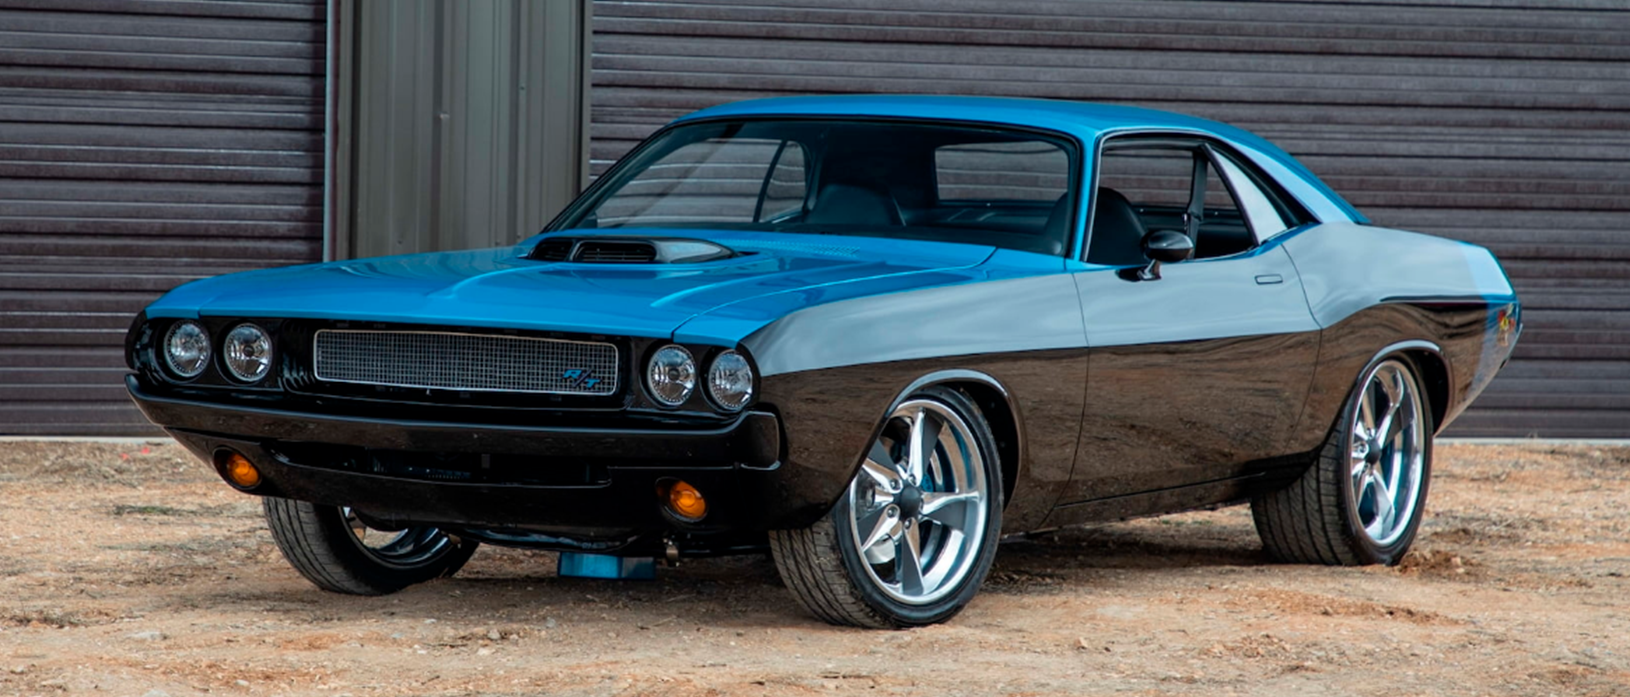 Blue and black 1970 Dodge Challenger Resto Mod